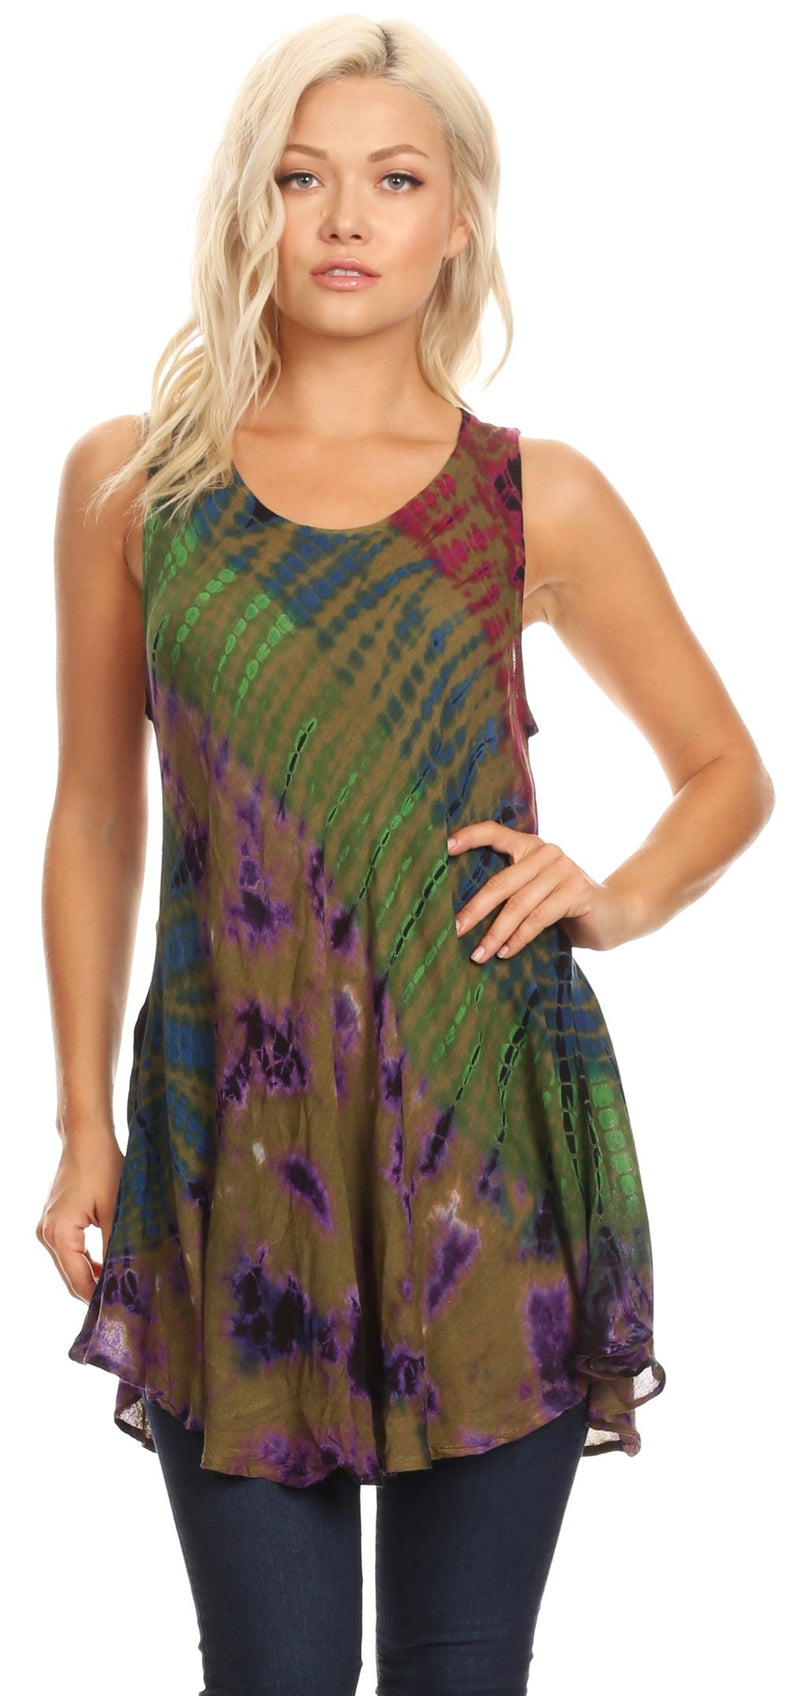 Sakkas Natalia Womens Summer Sleeveless Tie Dye Flare Tank Top Tunic Blouse